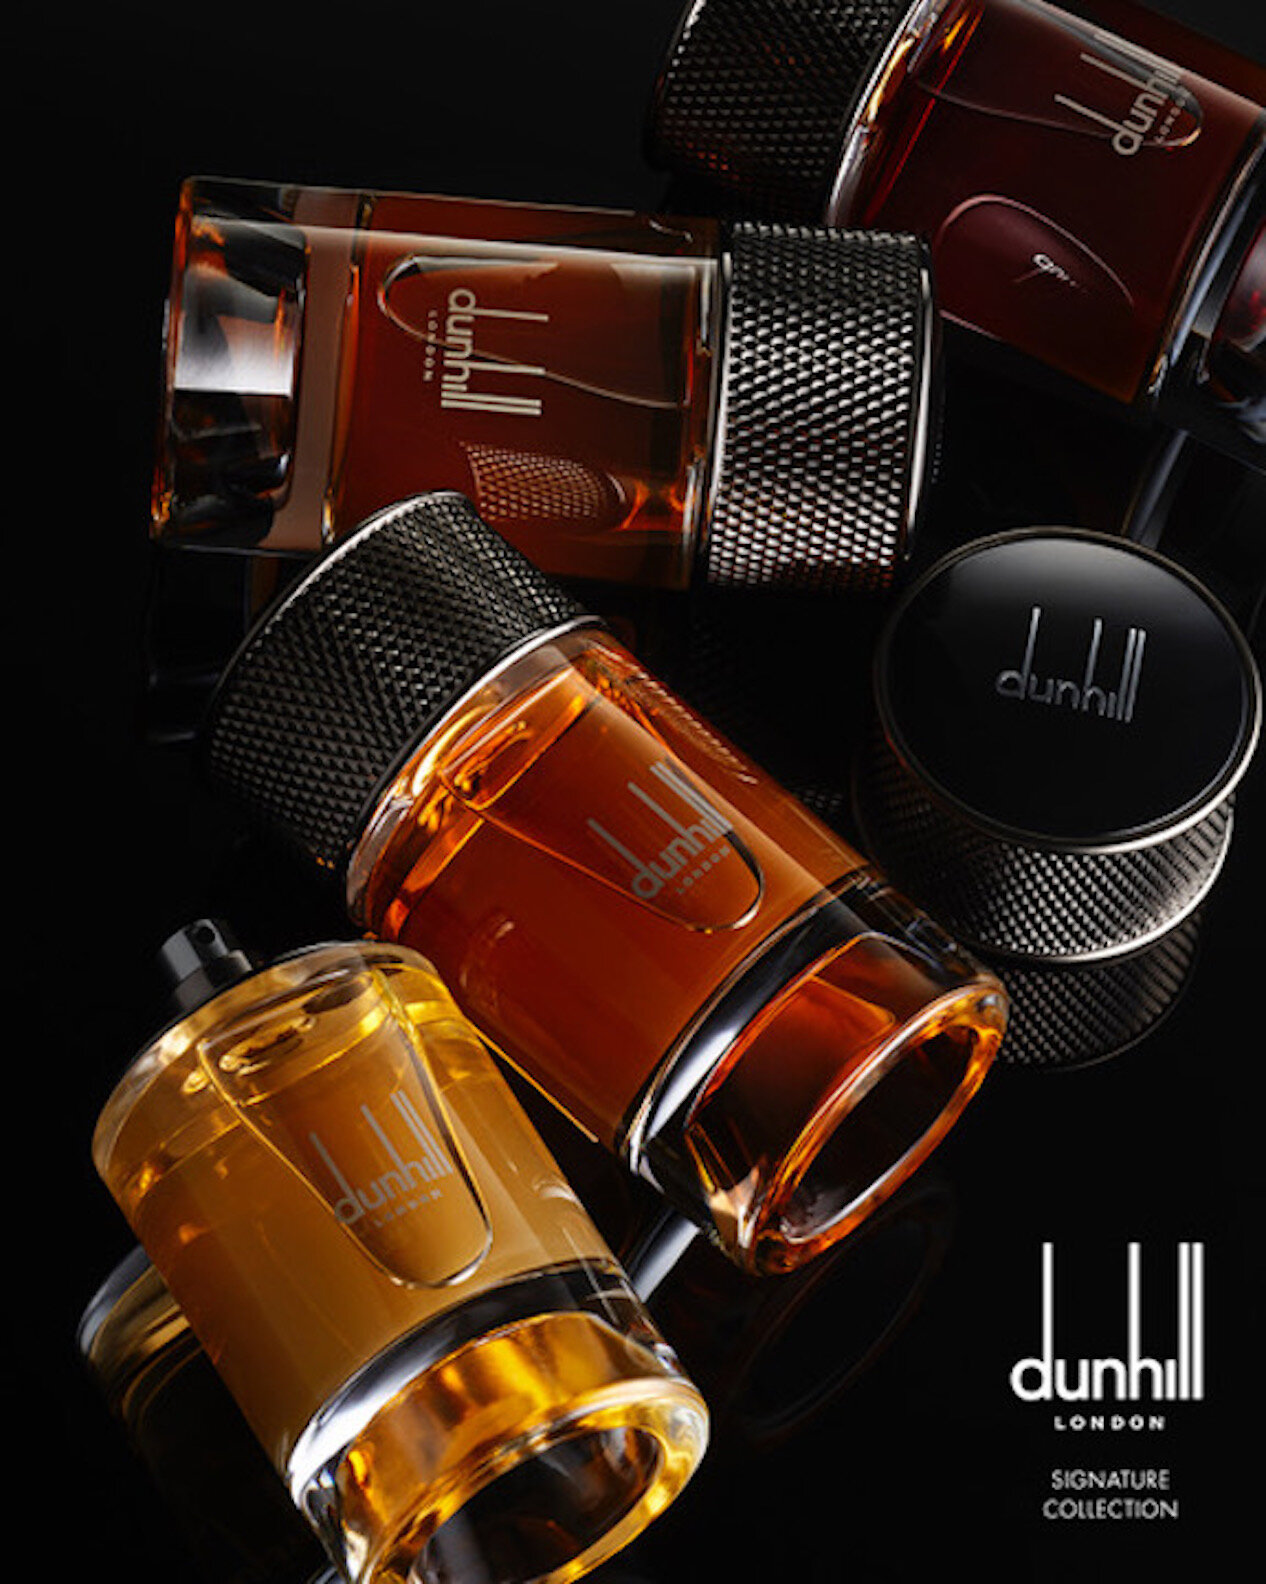 Dunhill_Signature Collection_2019.jpeg